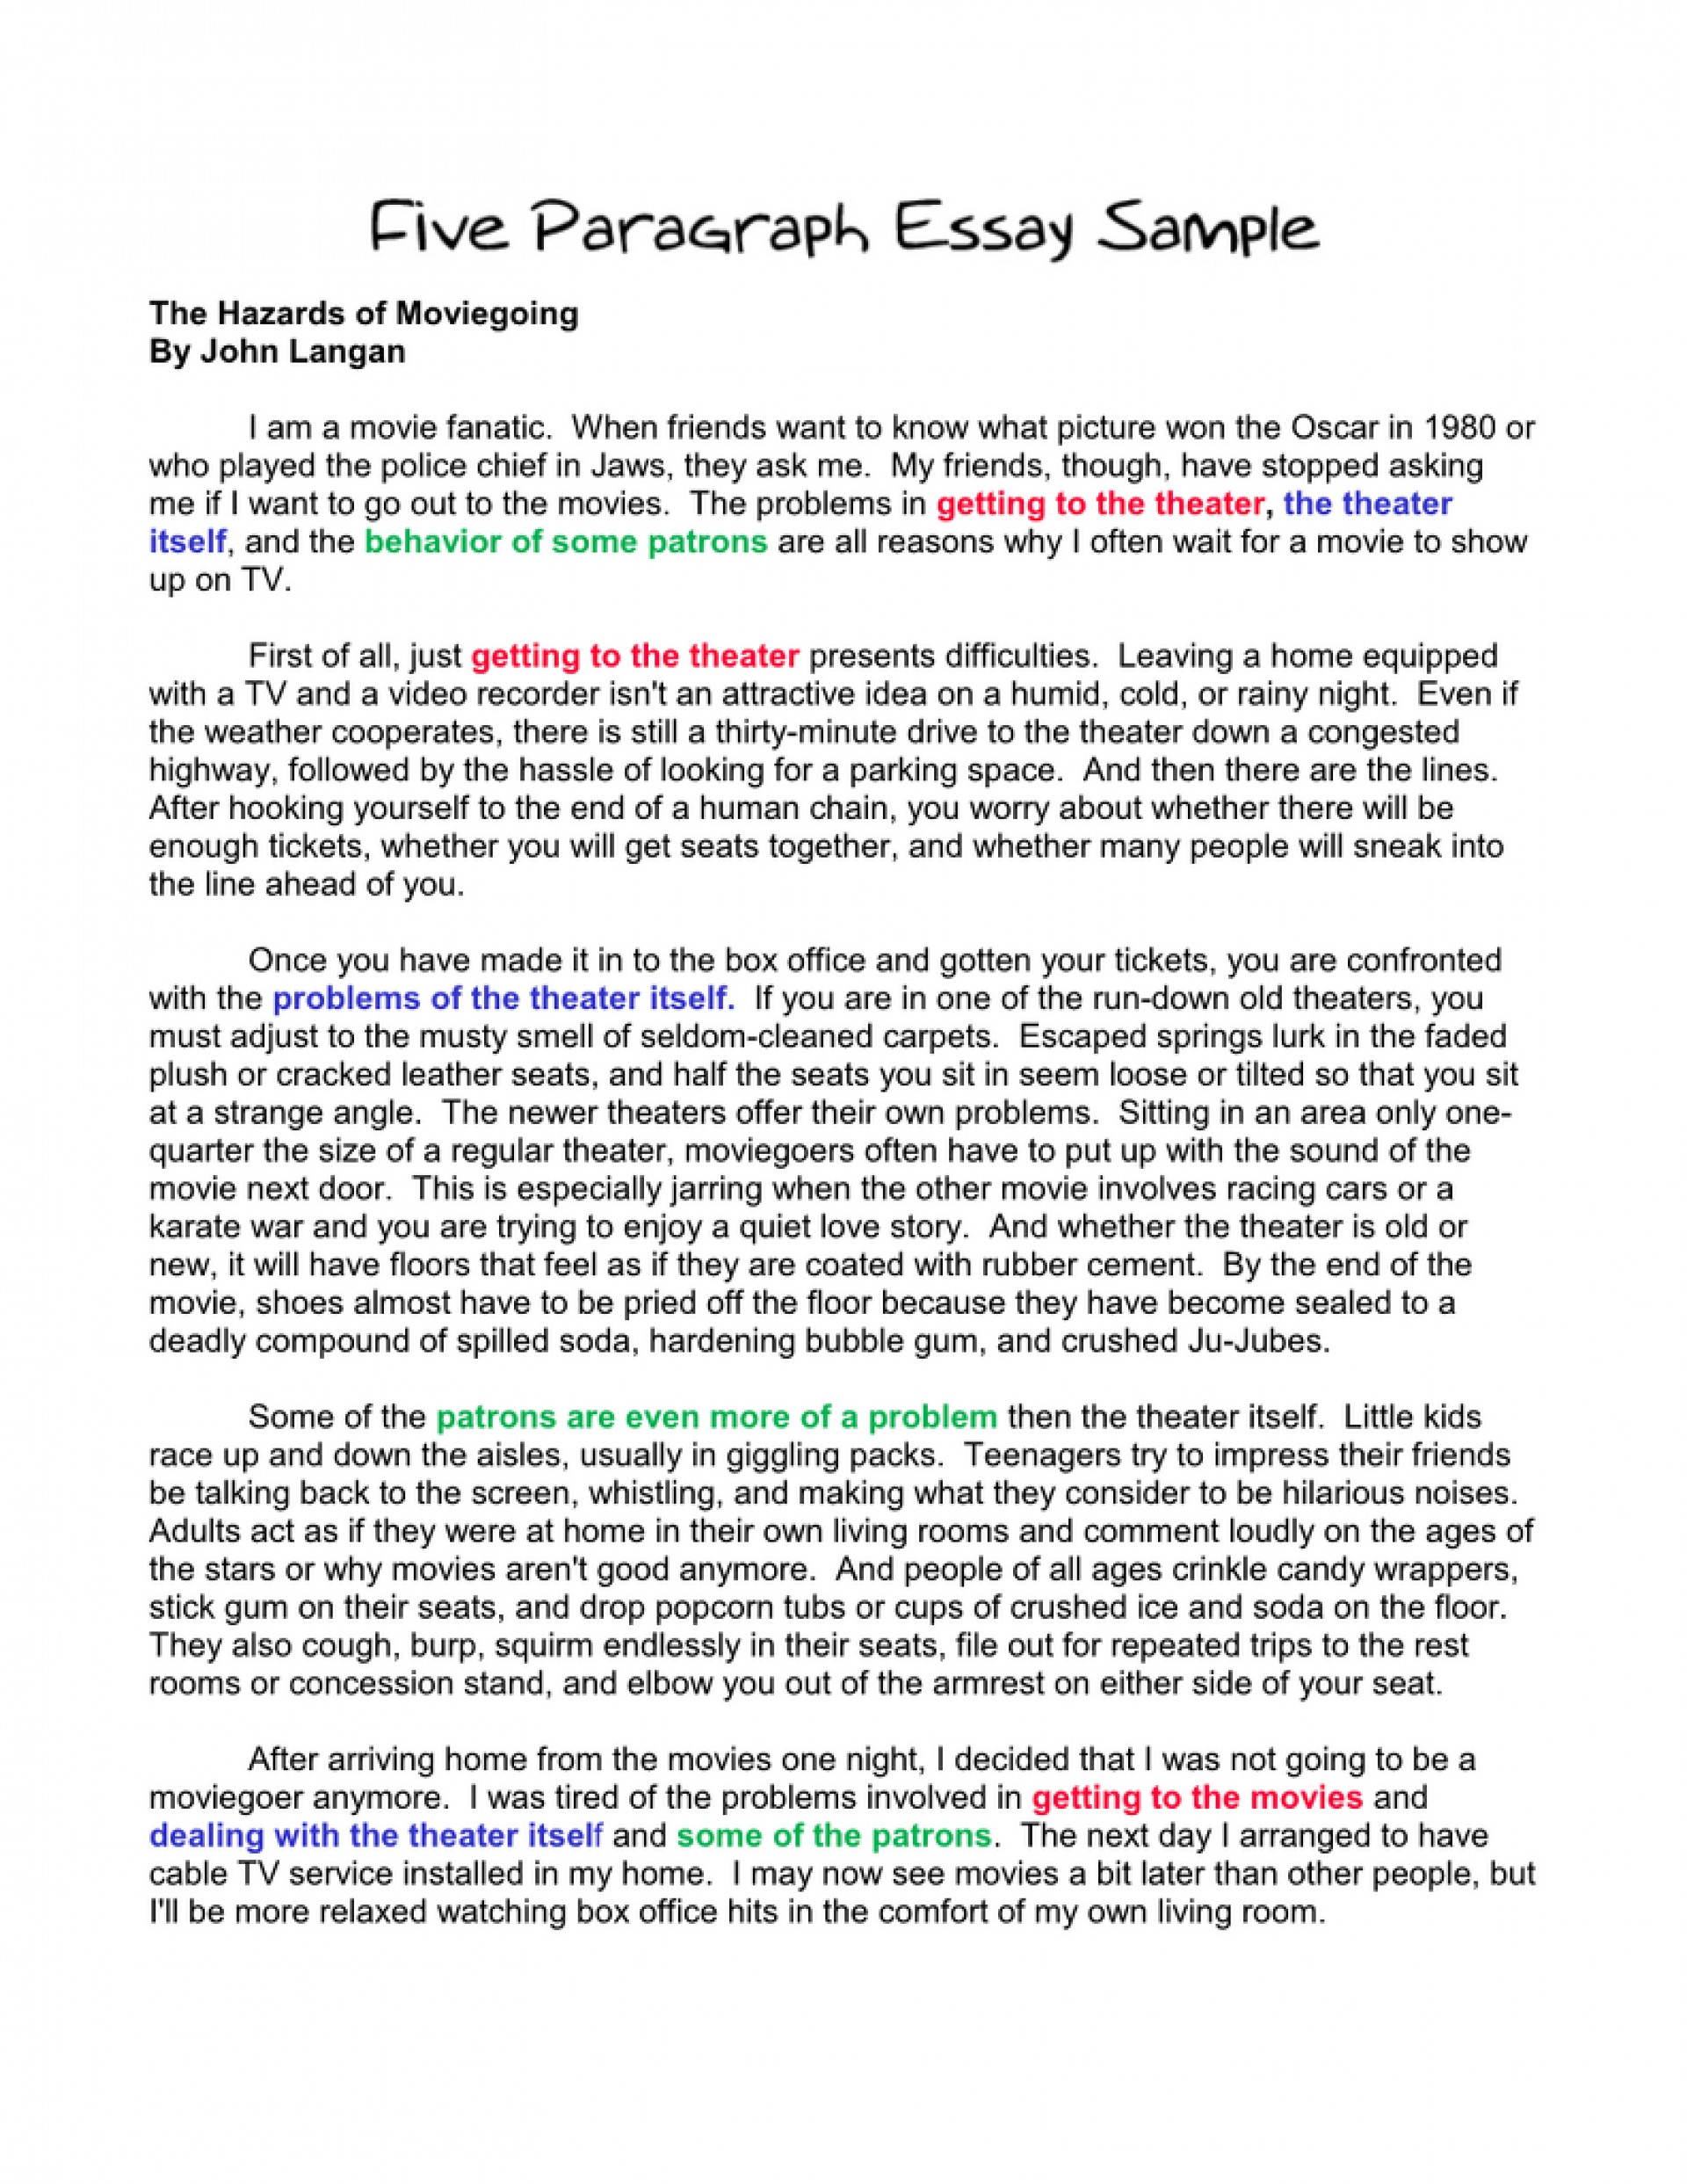 002 Paragraph Essay Sample Example Basic Outline An How To Start Sentence In First Second Write Third Body Conclusion Argumentative Stirring 5 Free Template Printable 1920